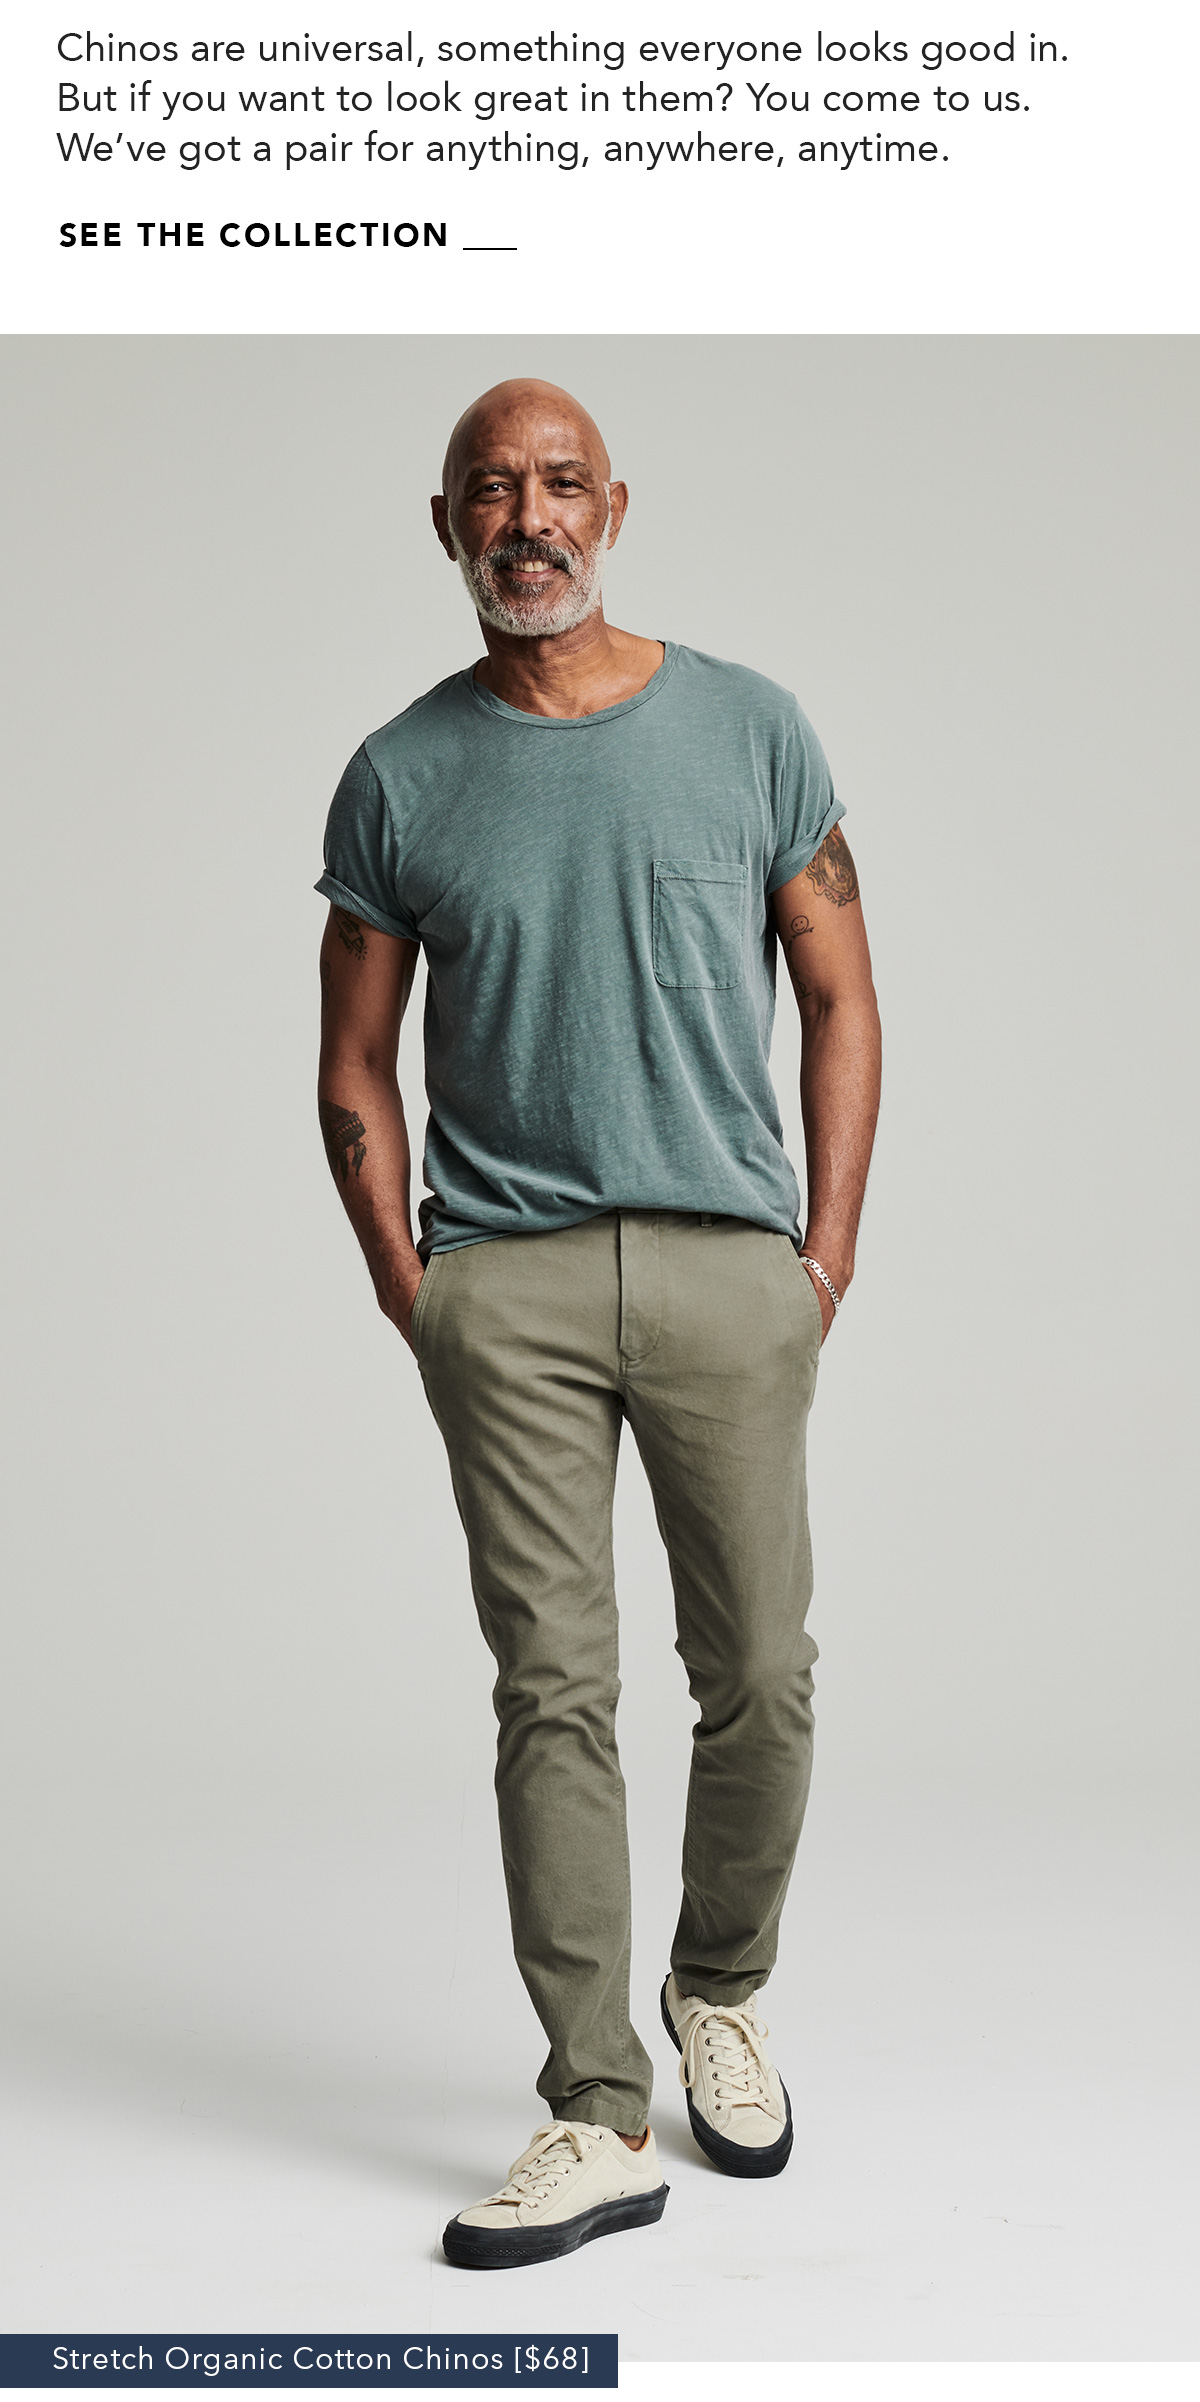 Chinos are universal, something everyone looks good in. But if you want to look great in them? You come to us. We've got a pair for anything, anywhere, anytime. SHOP THE GUIDE →